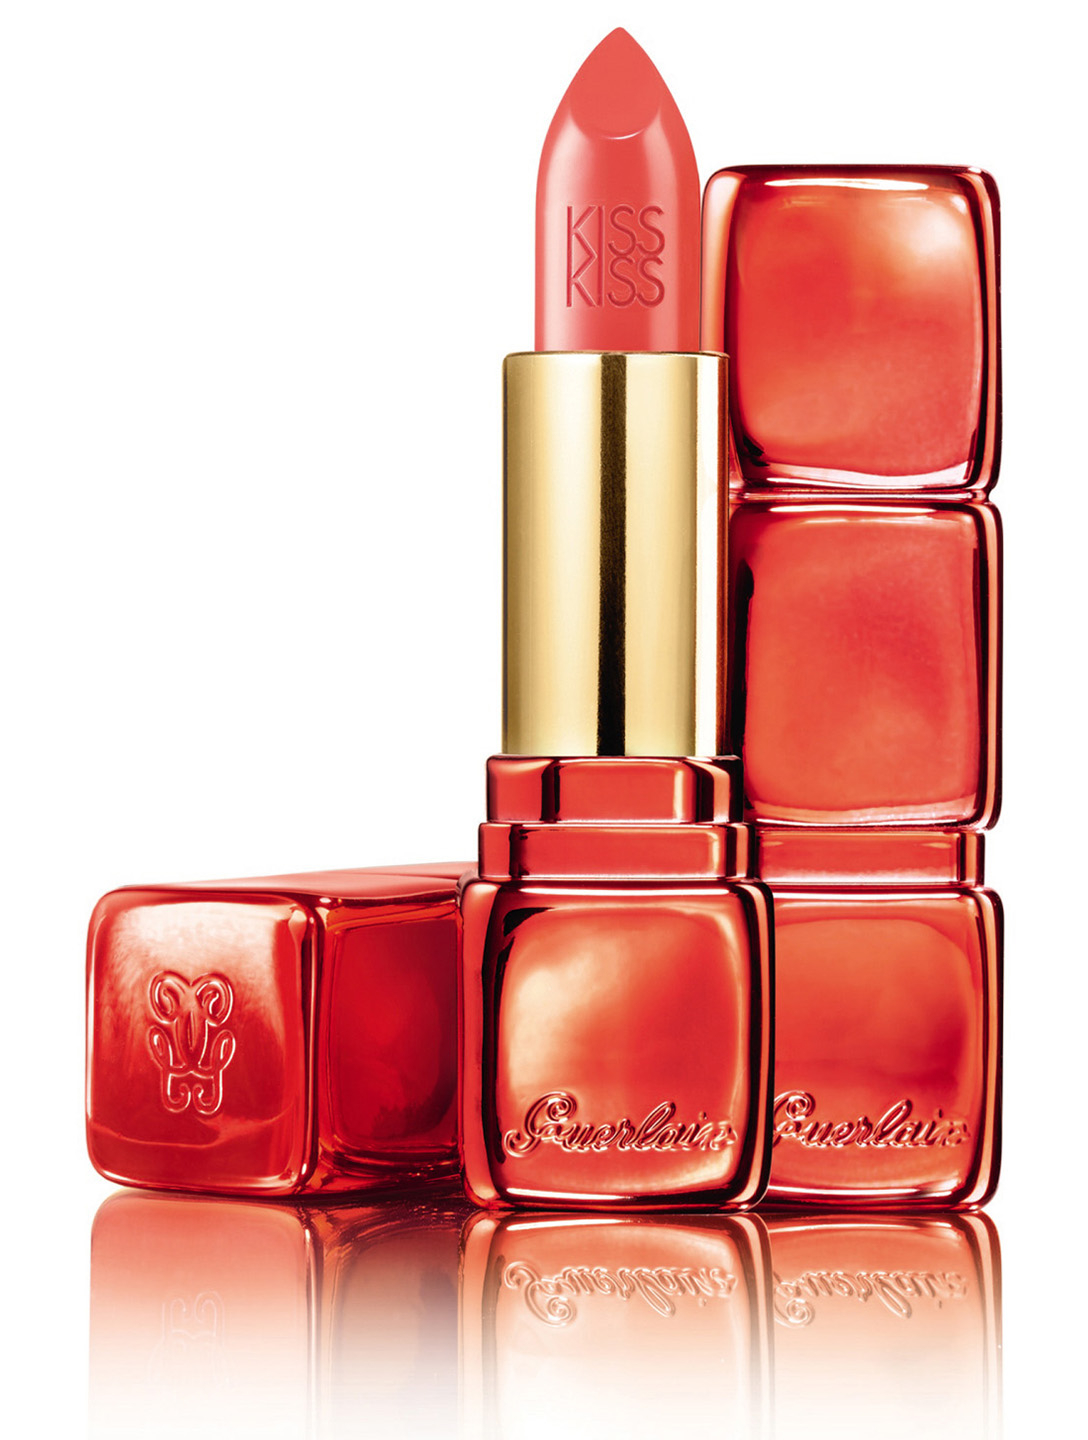 GUERLAIN KissKiss Le Rouge Lipstick  - Chinese New Year Limited Edition Beauty Orange